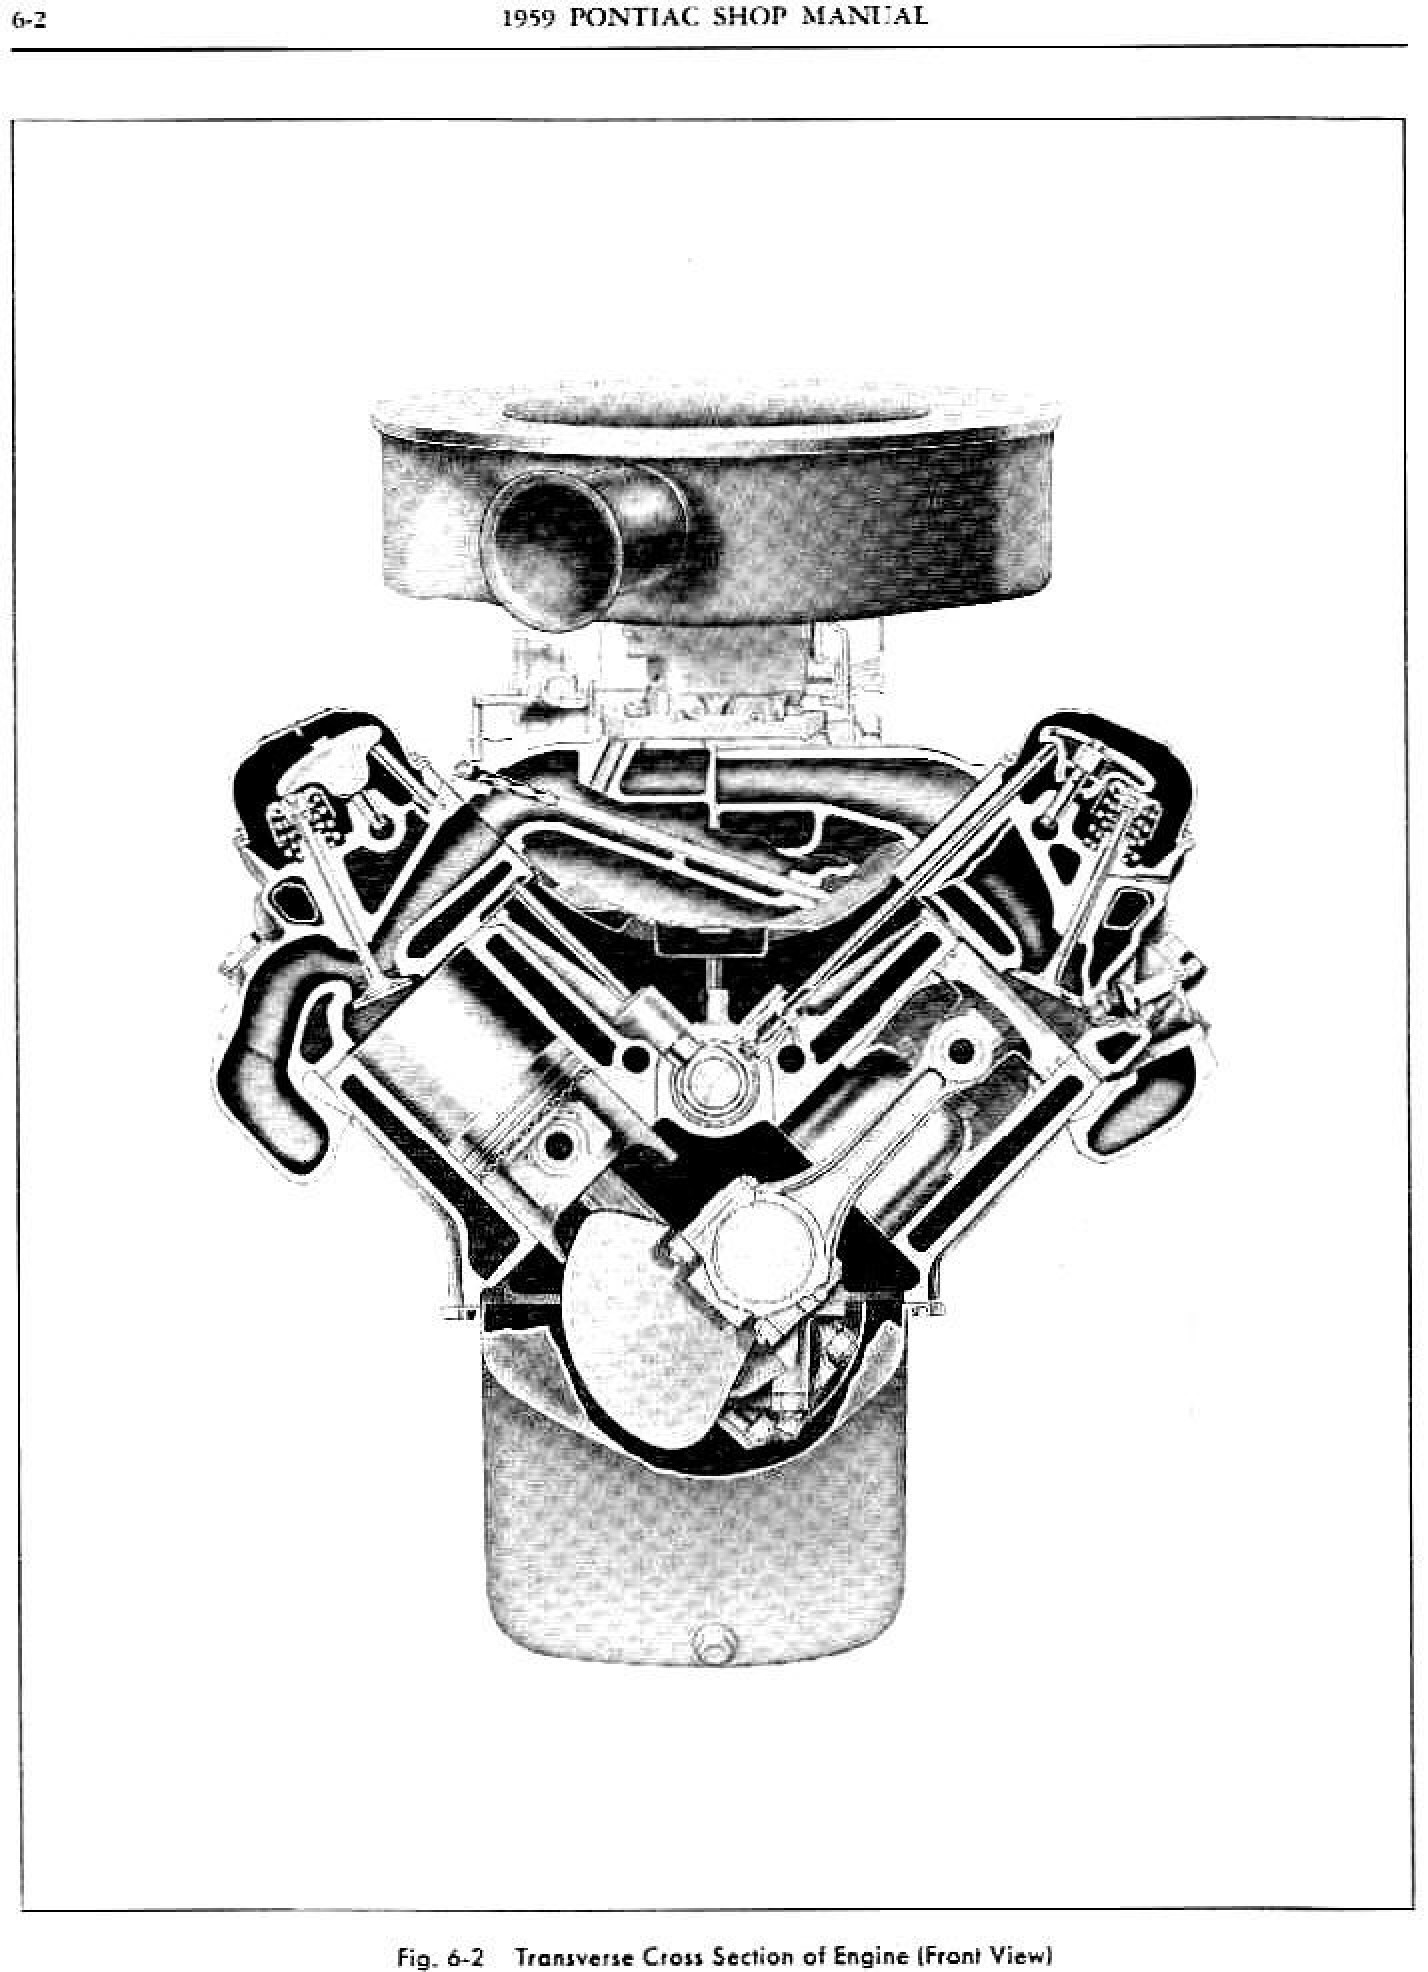 1959 Pontiac Shop Manual- Engine Page 3 of 49